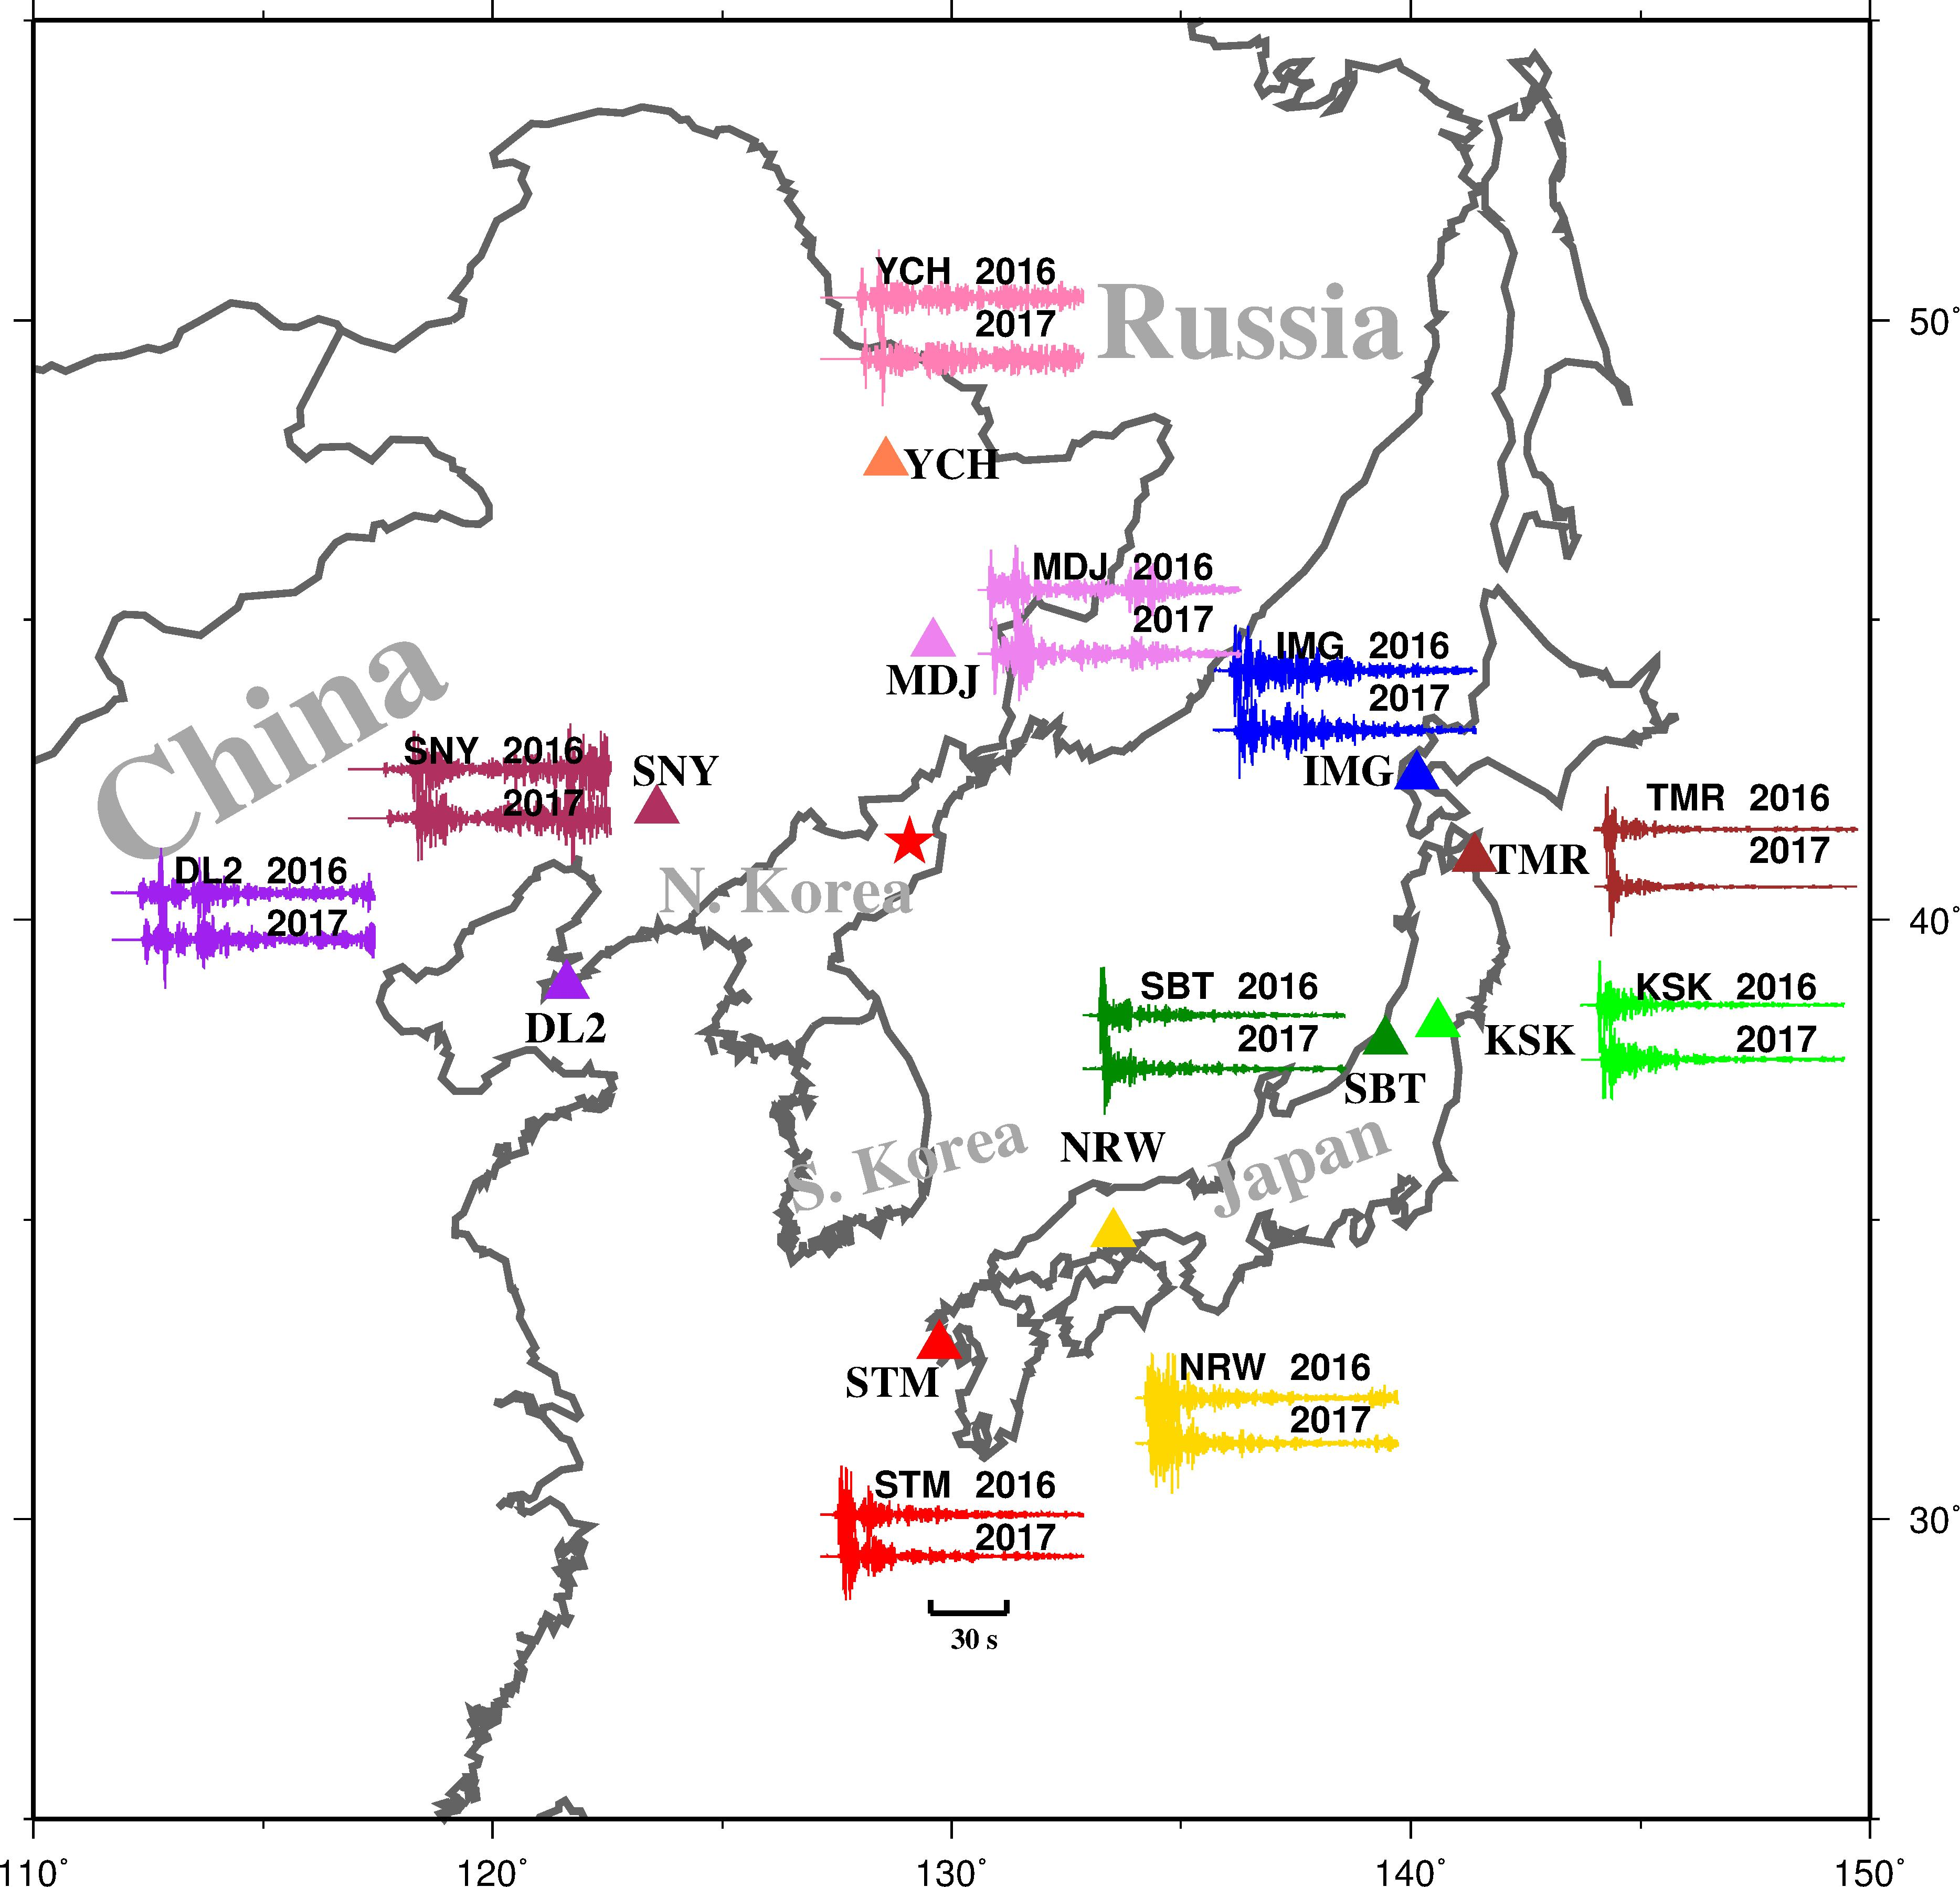 Map showing North Korea's 2017/09/03 and 2016/09/09 nuclear test sites